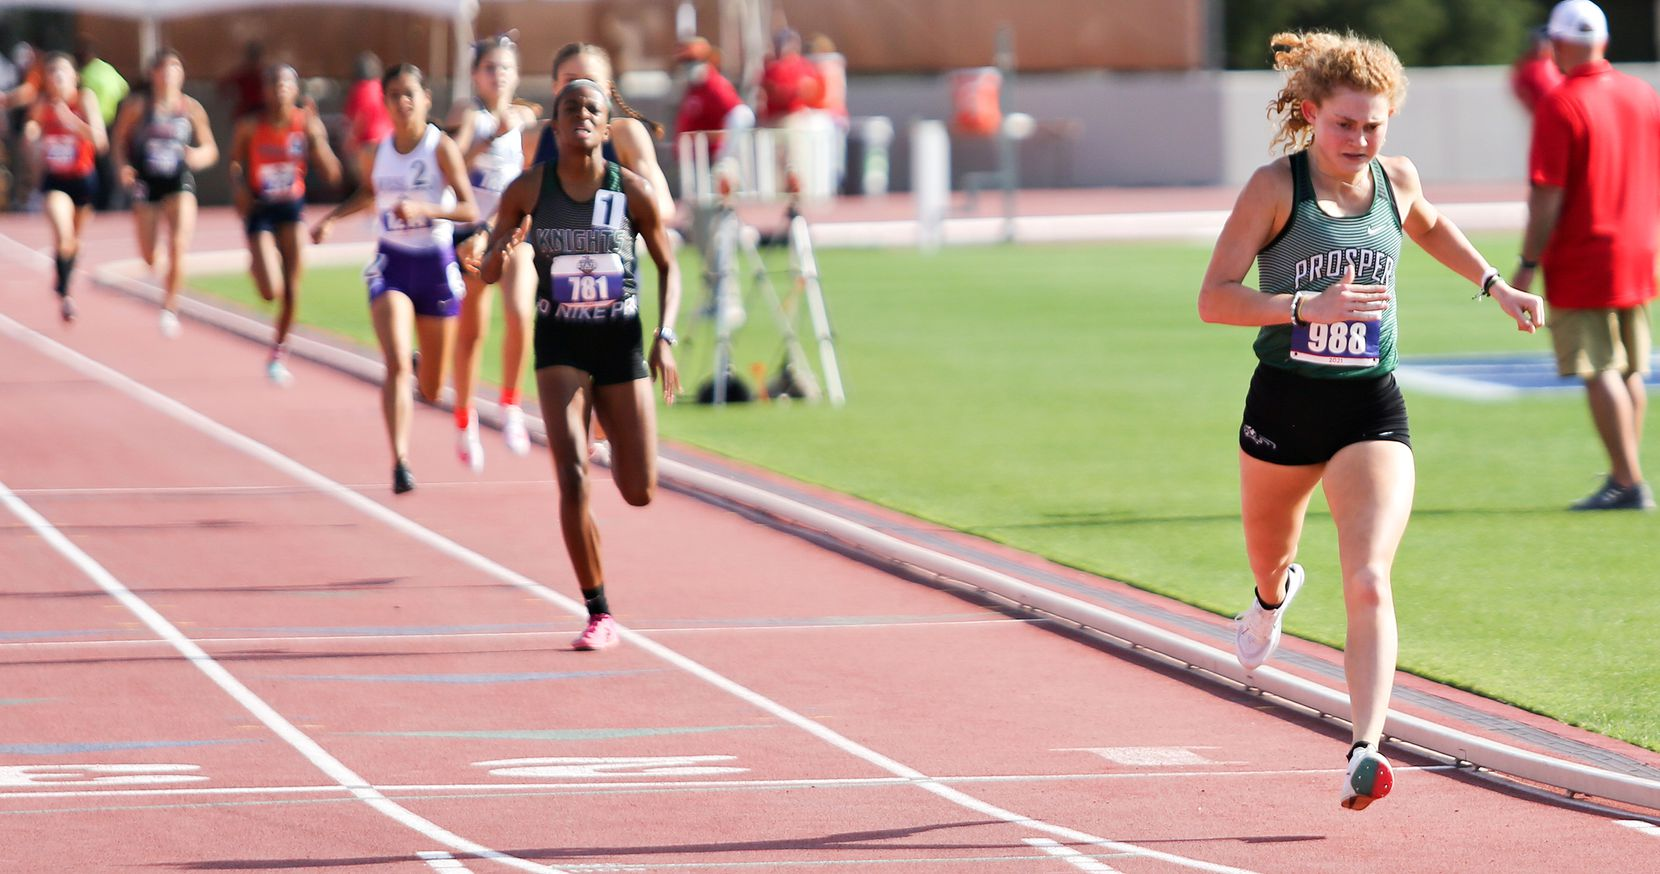 Prosper's Aubrey O'Connell places first in the 6A girls 800 meter run during the UIL state track meet at the Mike A. Myers Stadium, at the University of Texas on May 8, 2021 in Austin, Texas.